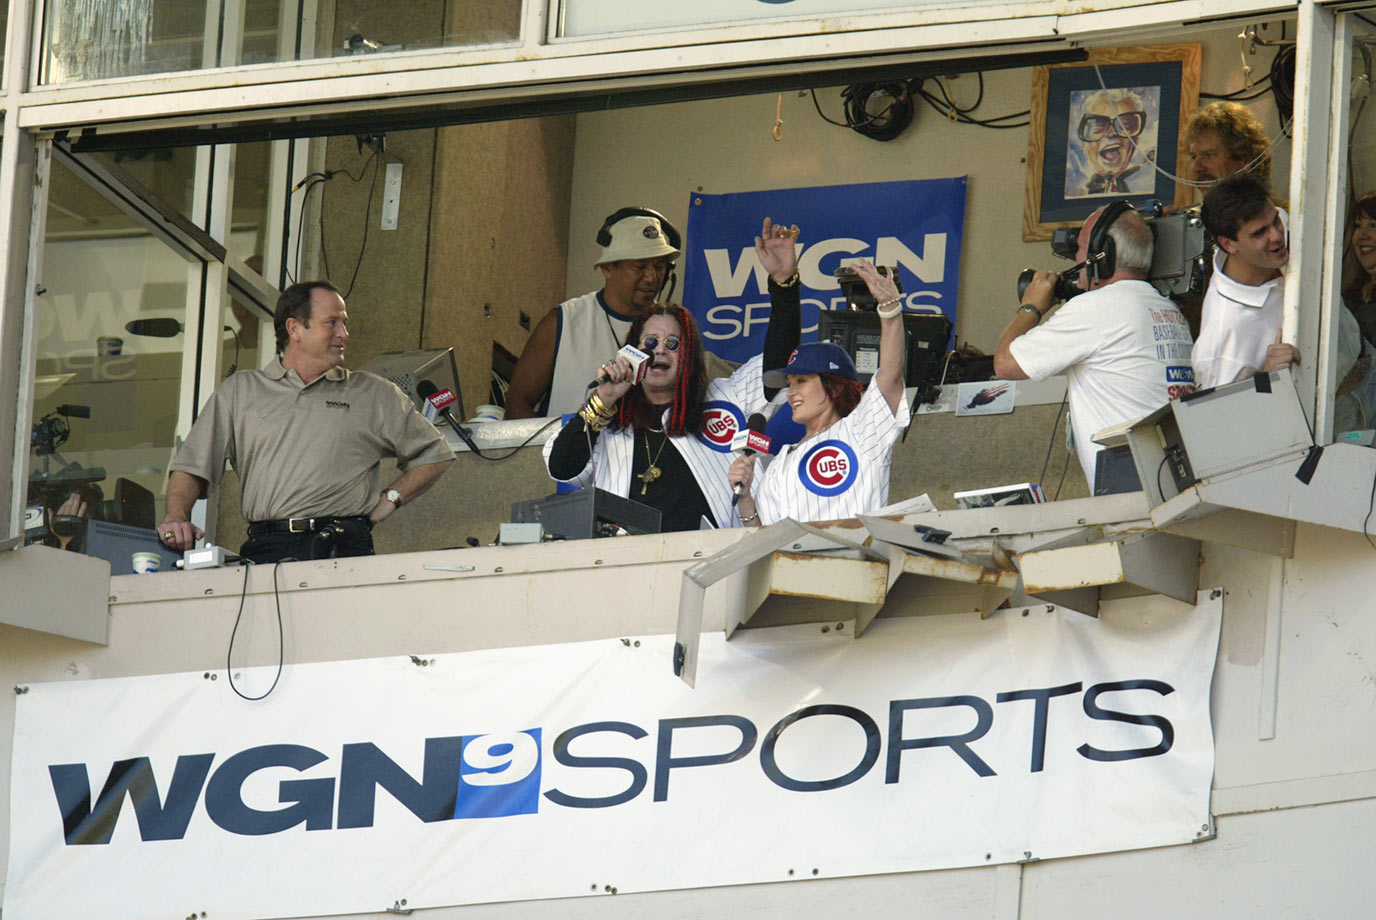 Chicago Cubs vs. Los Angeles Dodgers at Wrigley Field on Aug. 17, 2003 in Chicago.